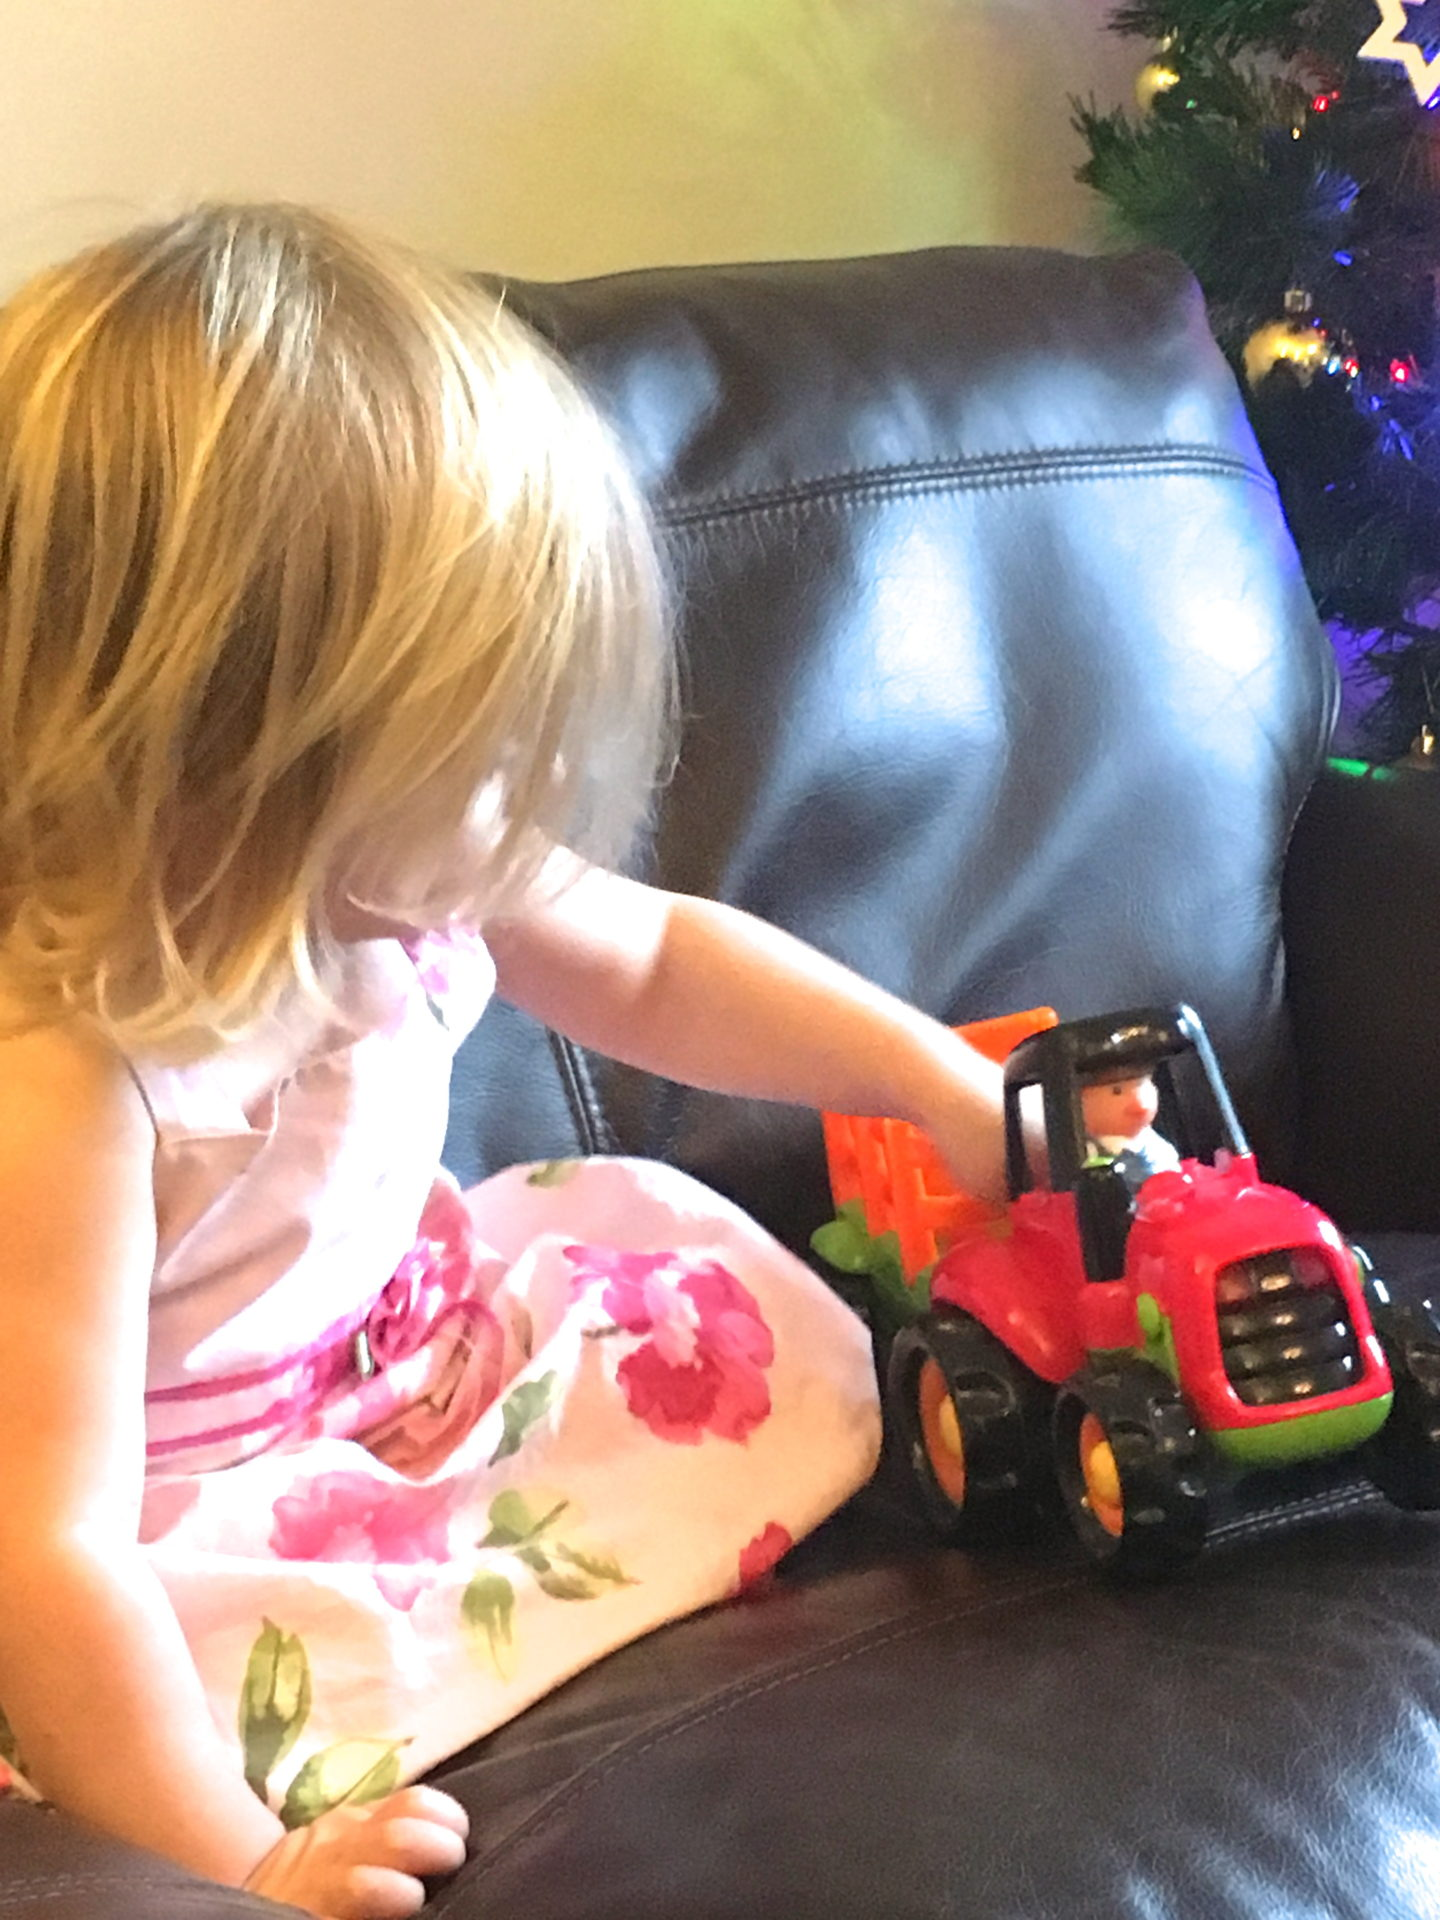 22 month old in pink dress playing with tractor toy